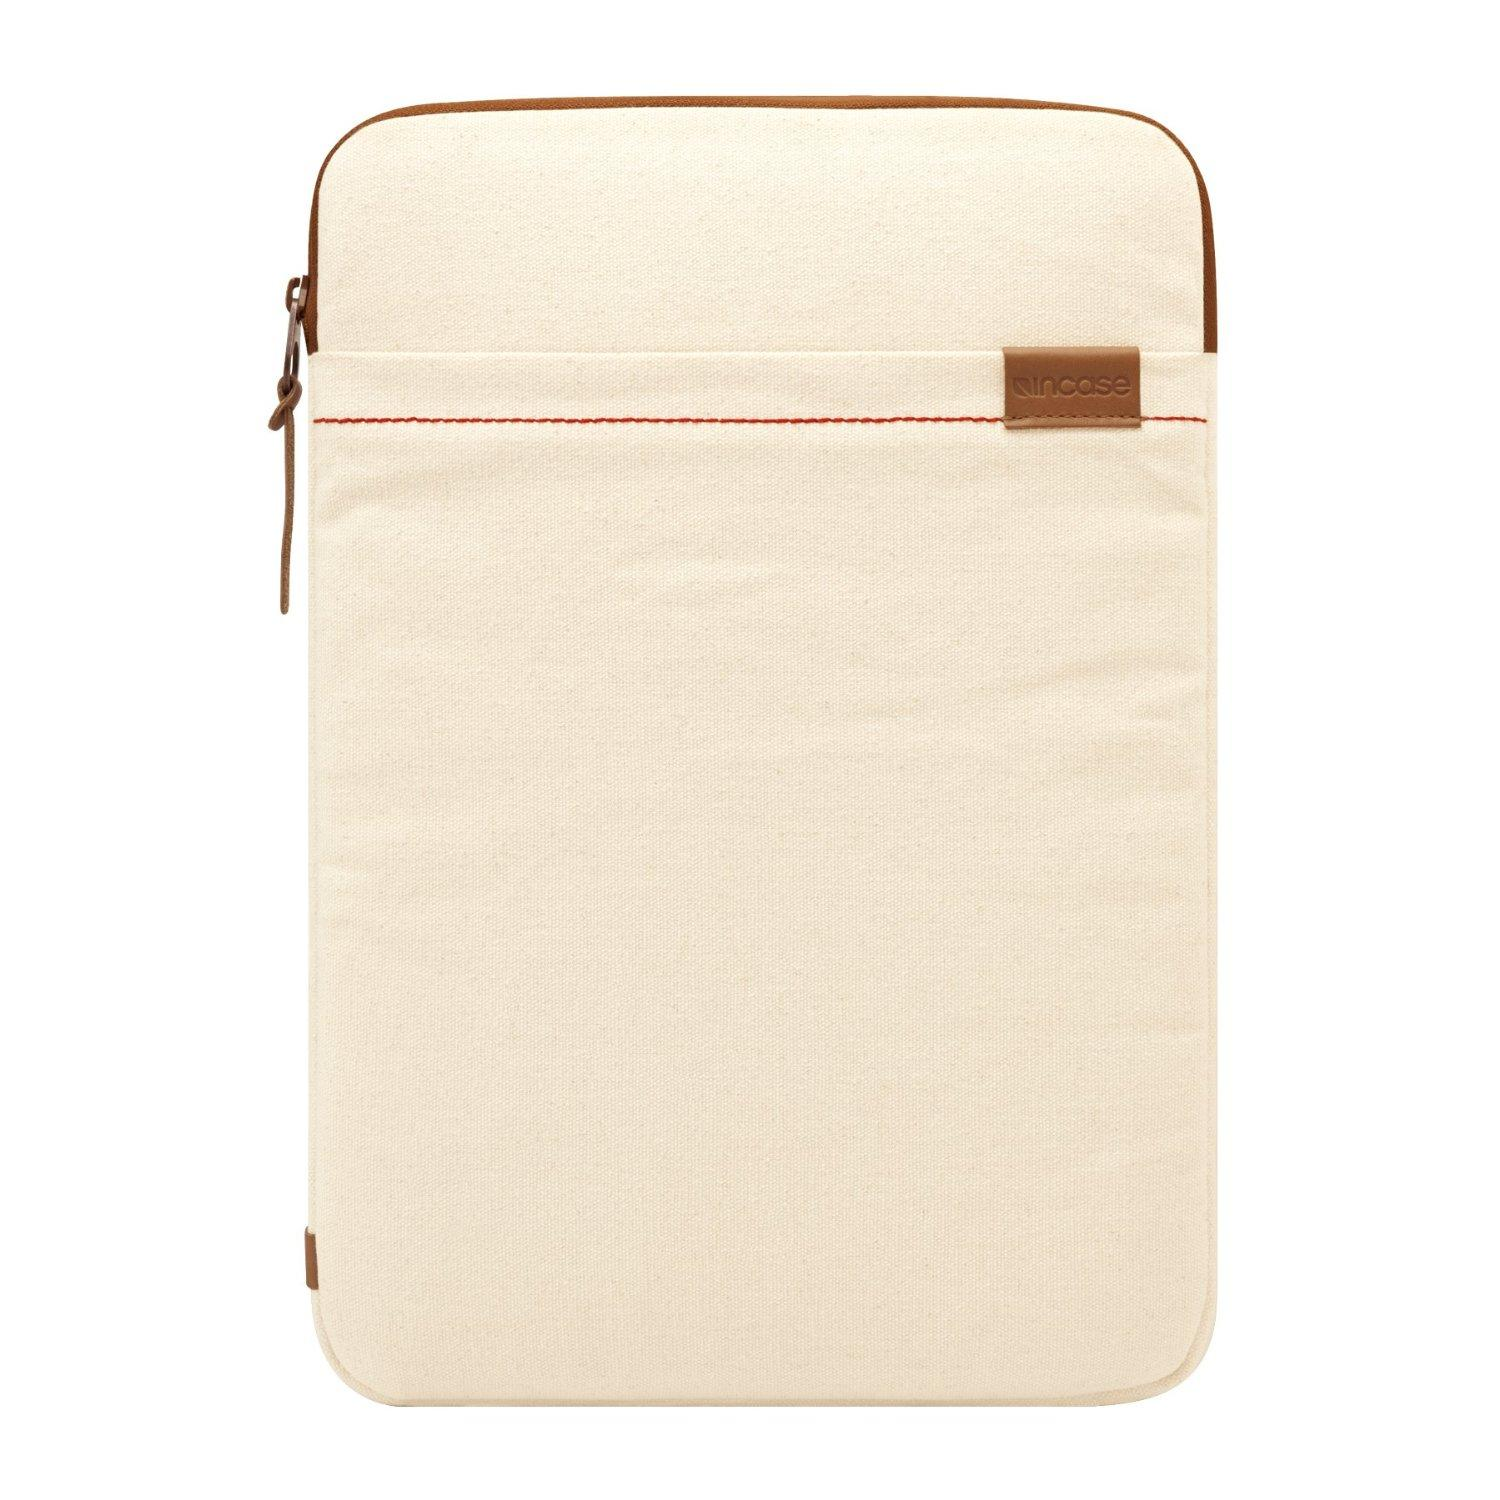 Incase CL60105 Terra Sleeve for 15-Inch NoteBook/Laptop/Macbook